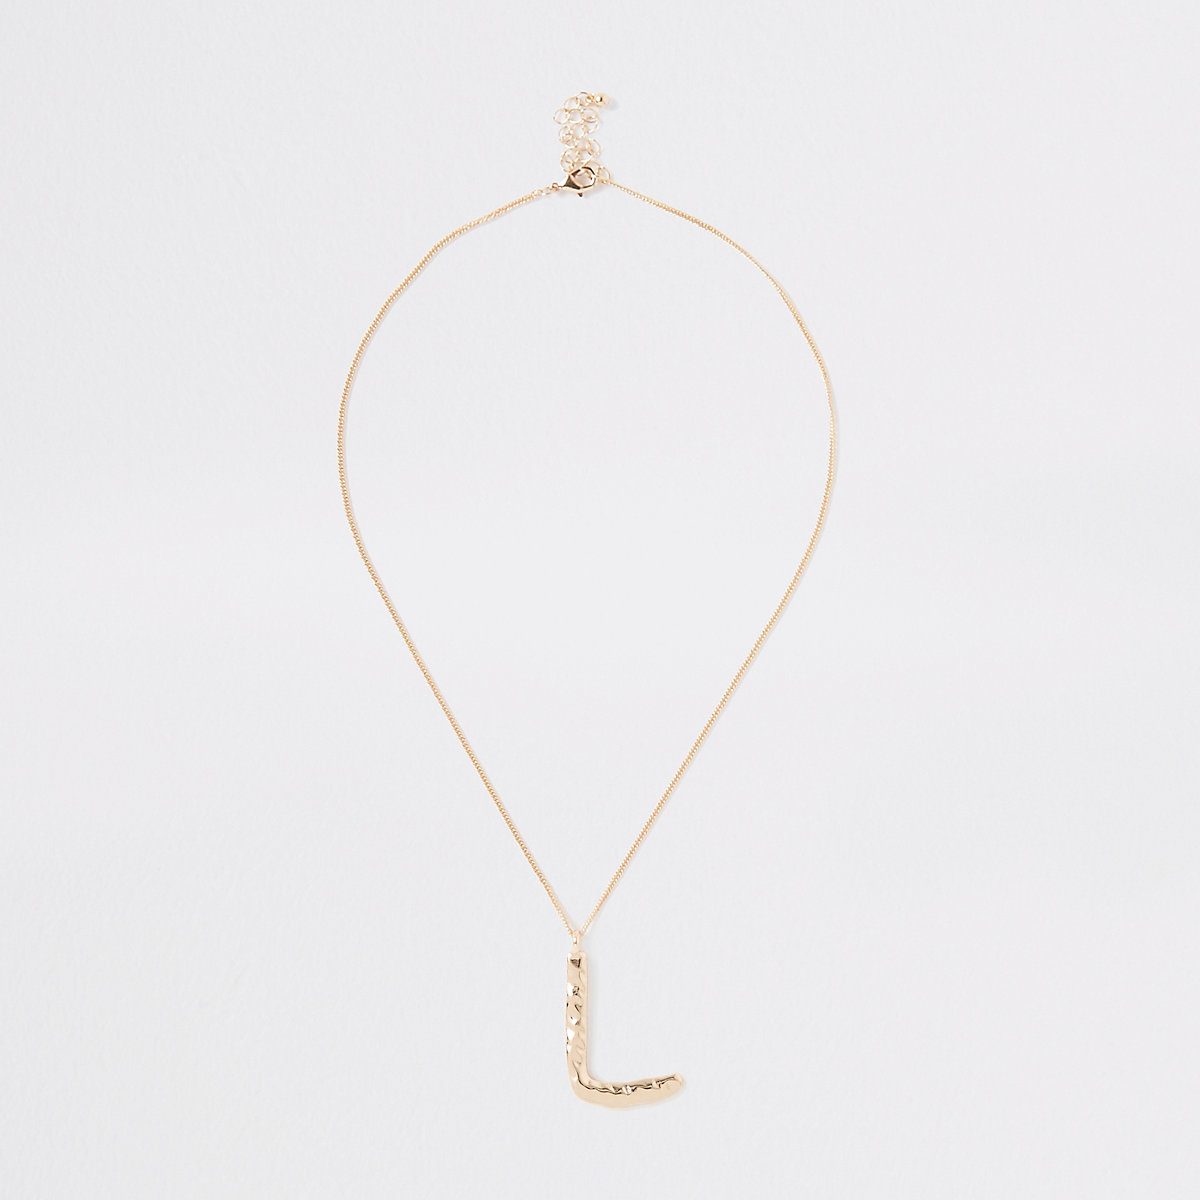 Gold color large initial 'L' necklace